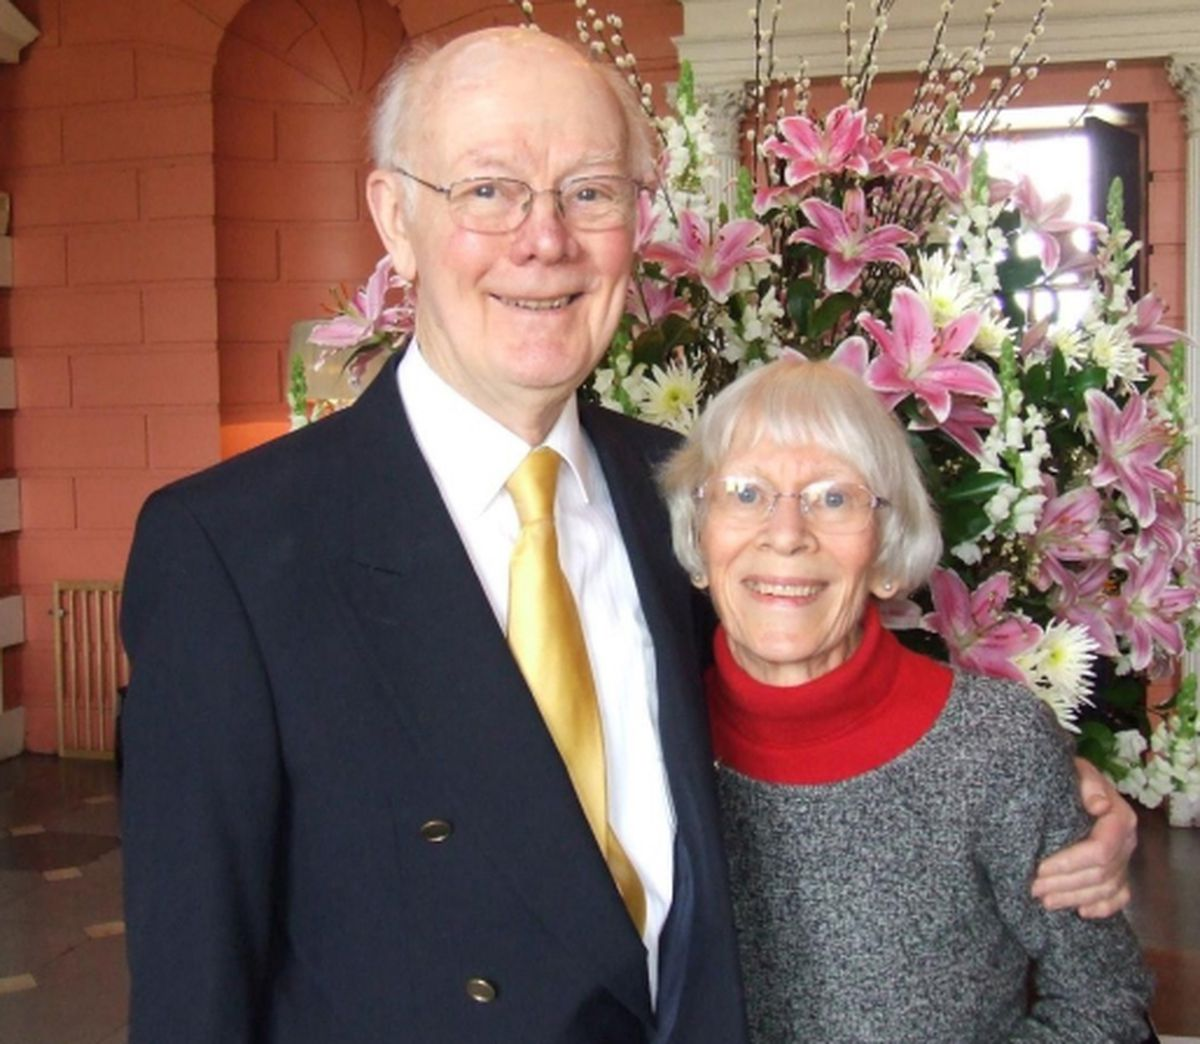 Keith Cattell and his wife Orleana.